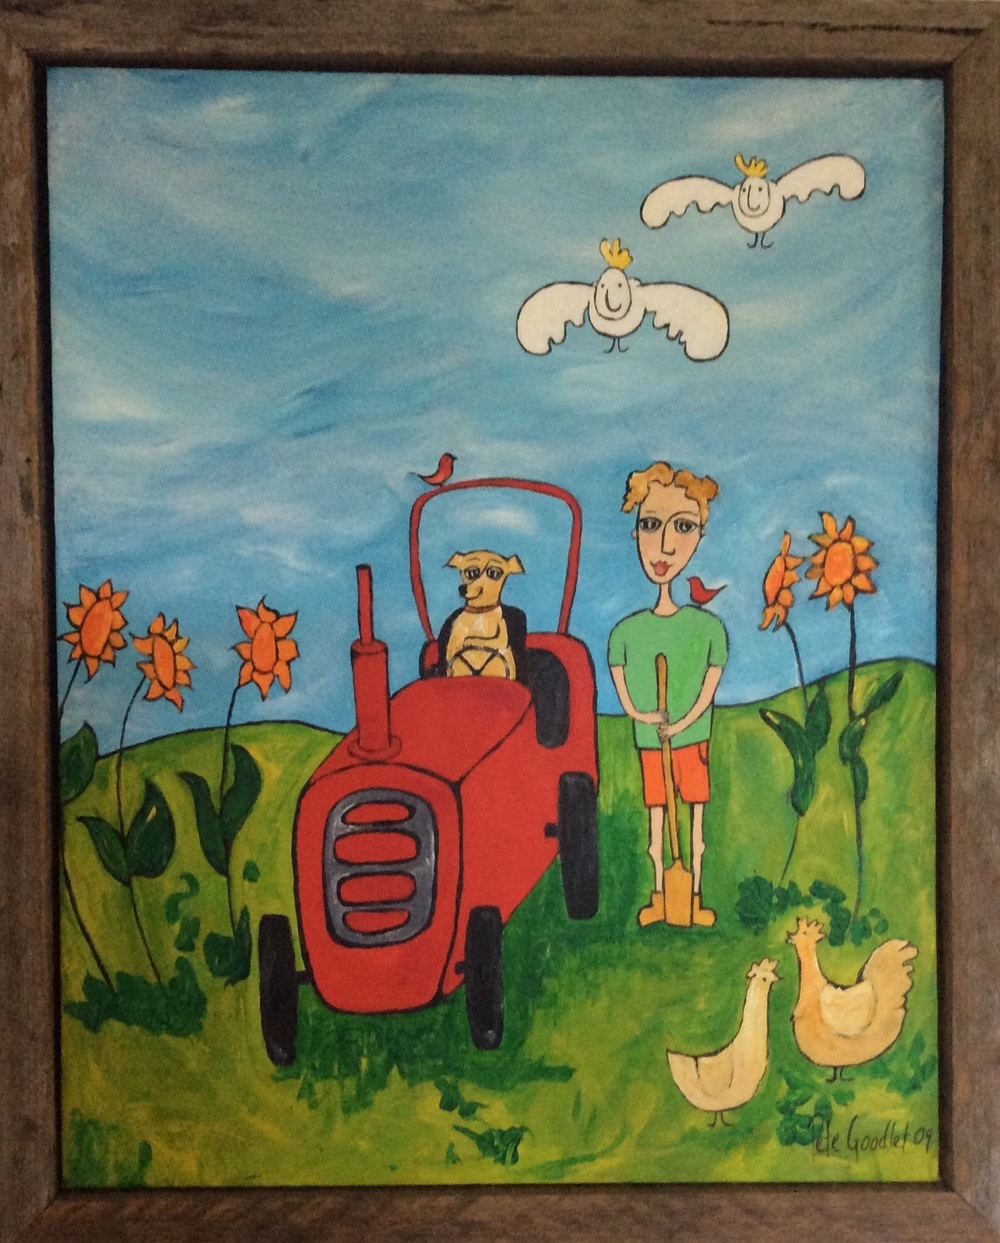 With her newly acquired skills Thelma Louise took to helping around the farm (Framed in tip wood)